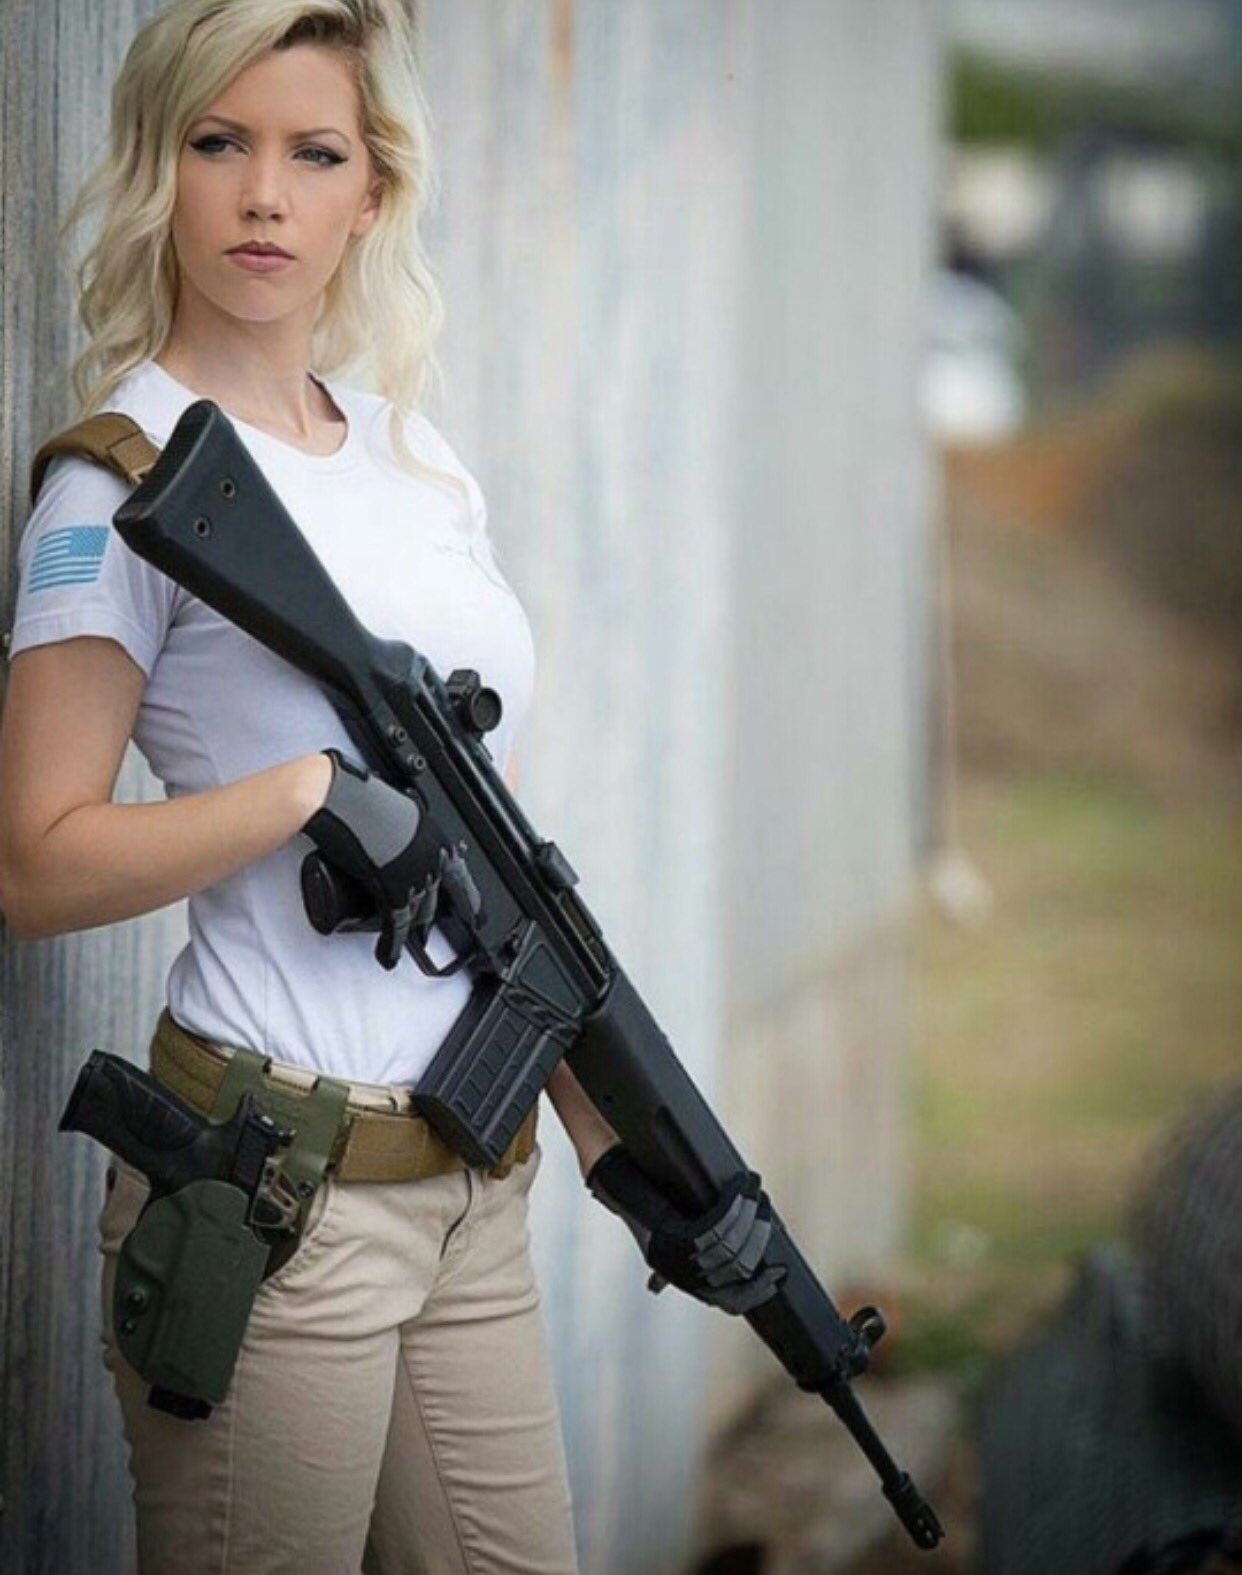 amature-wife-pictures-of-girls-shooting-guns-girls-love